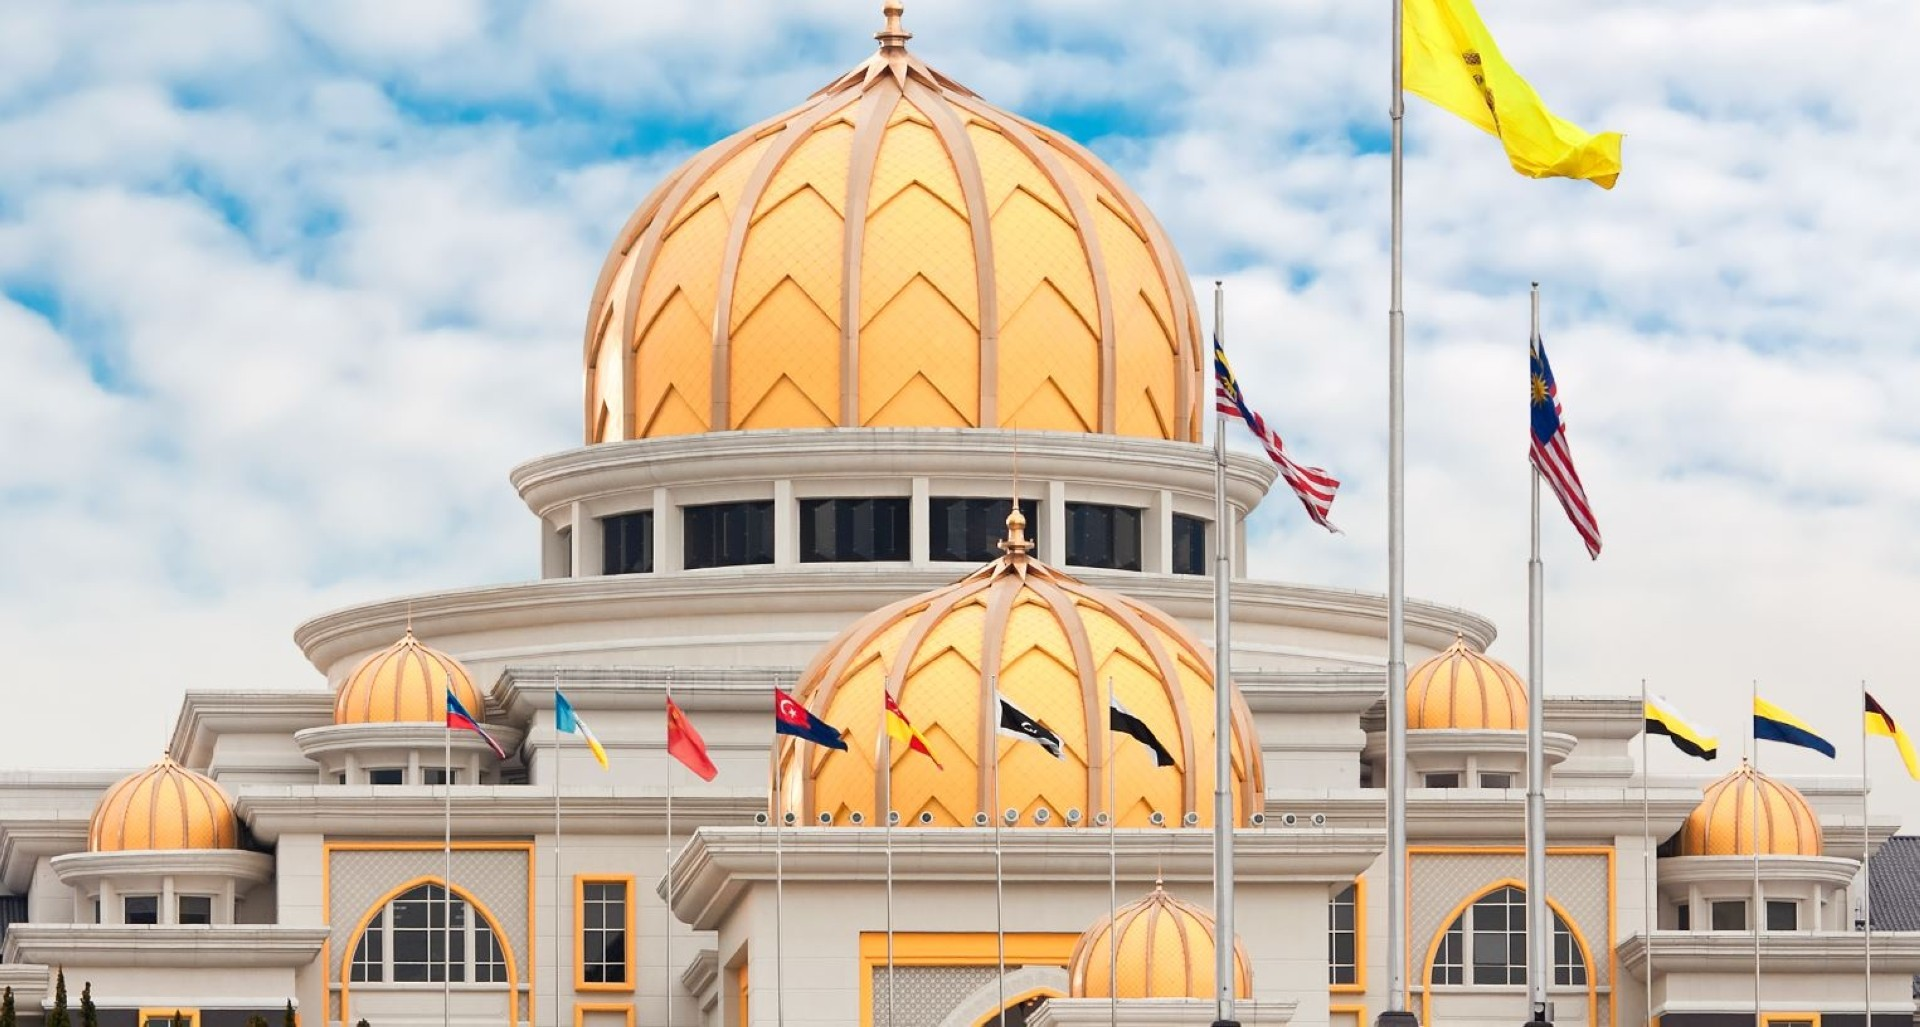 Widad Group also has a comprehensive maintenance contract for the Istana Negara.